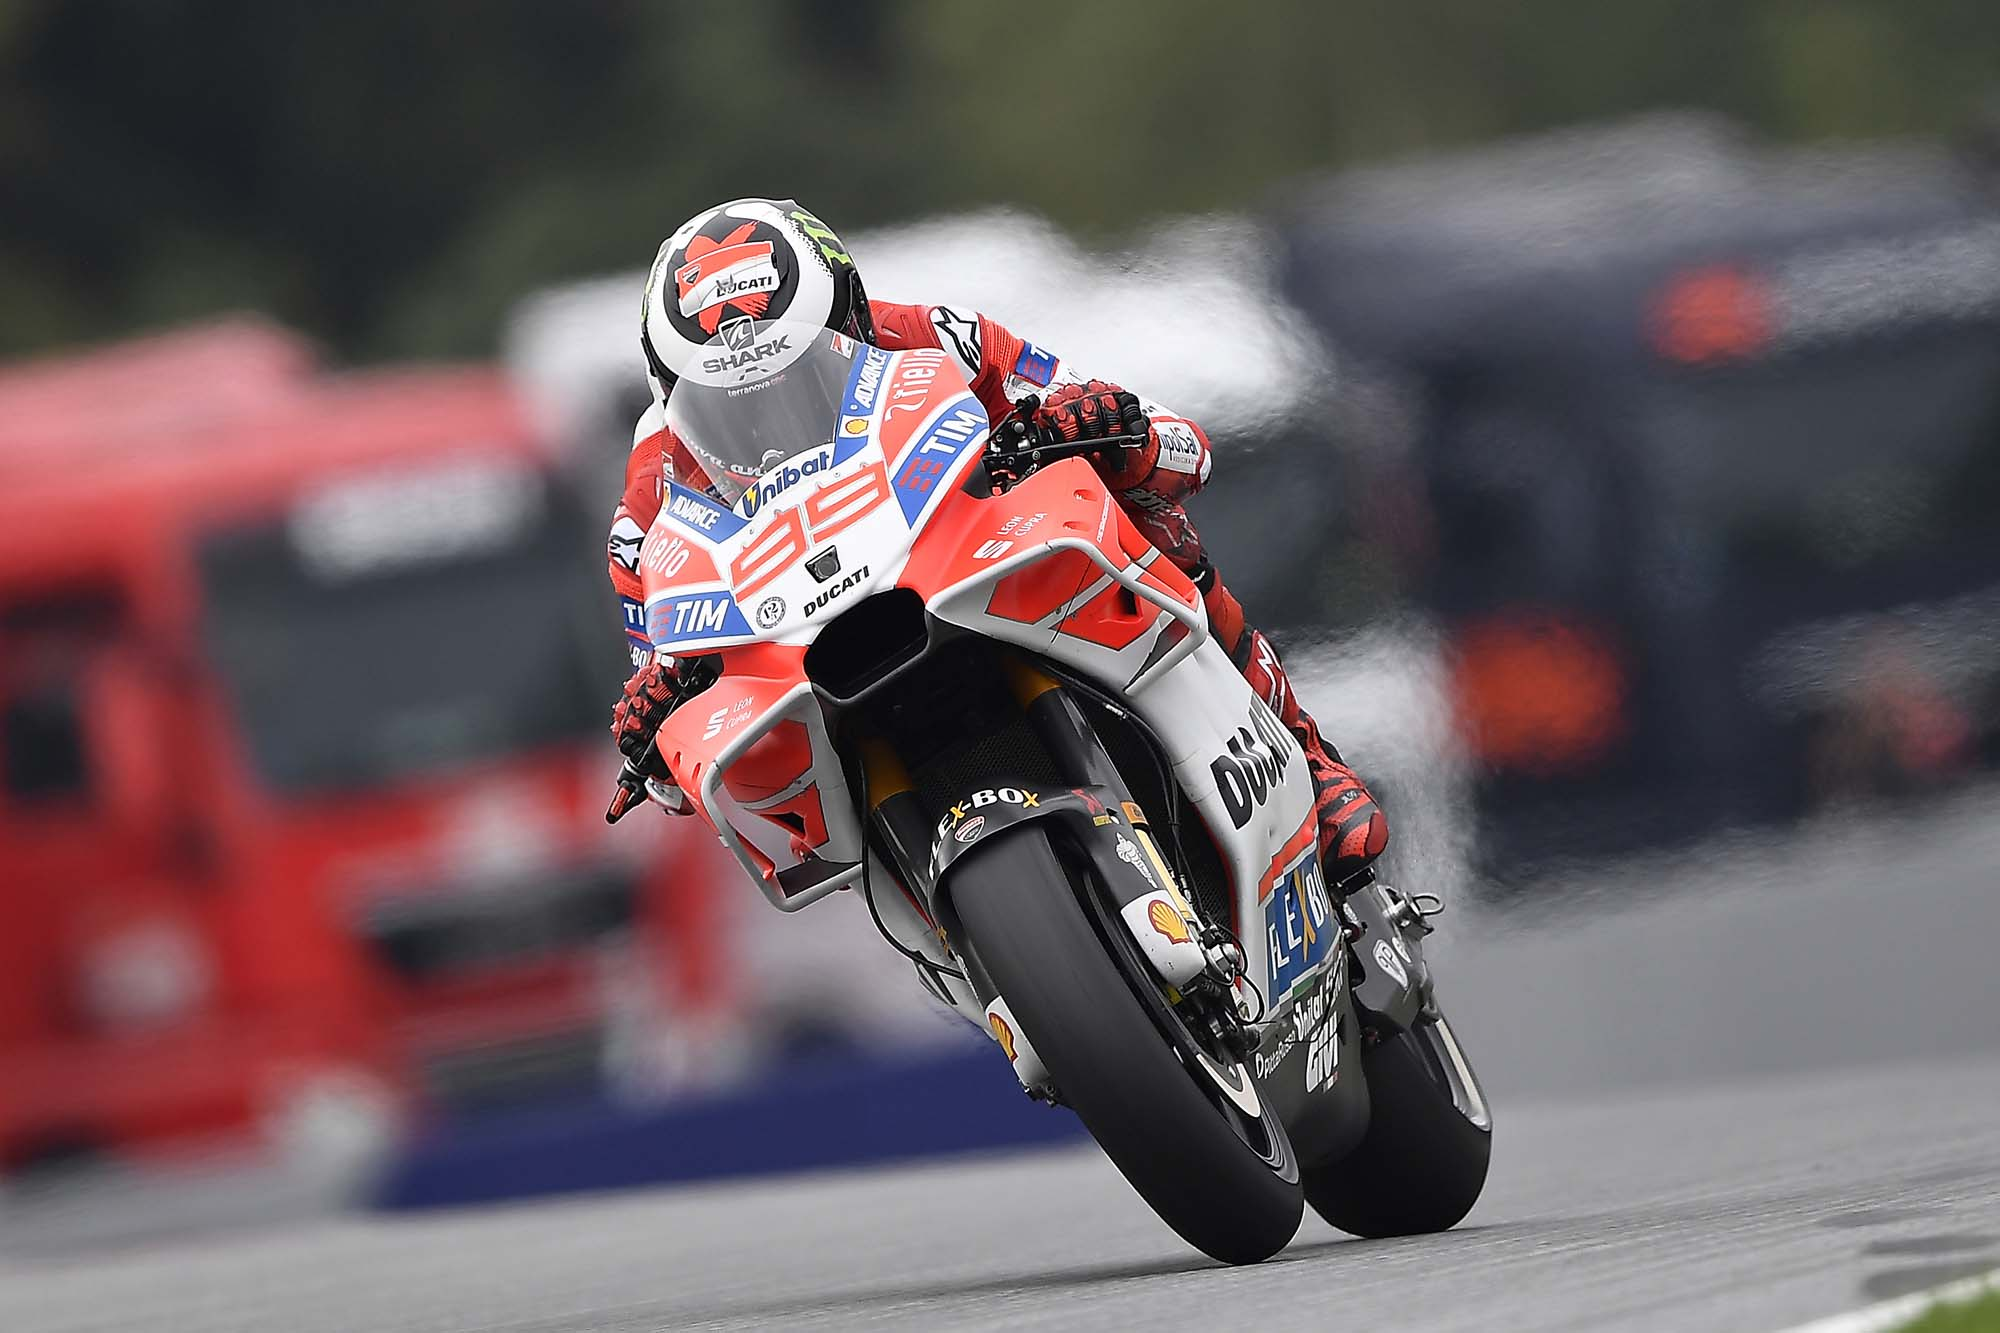 Danny Aldridge Explains Why Ducati's Aero Fairing Is Legal - Asphalt & Rubber